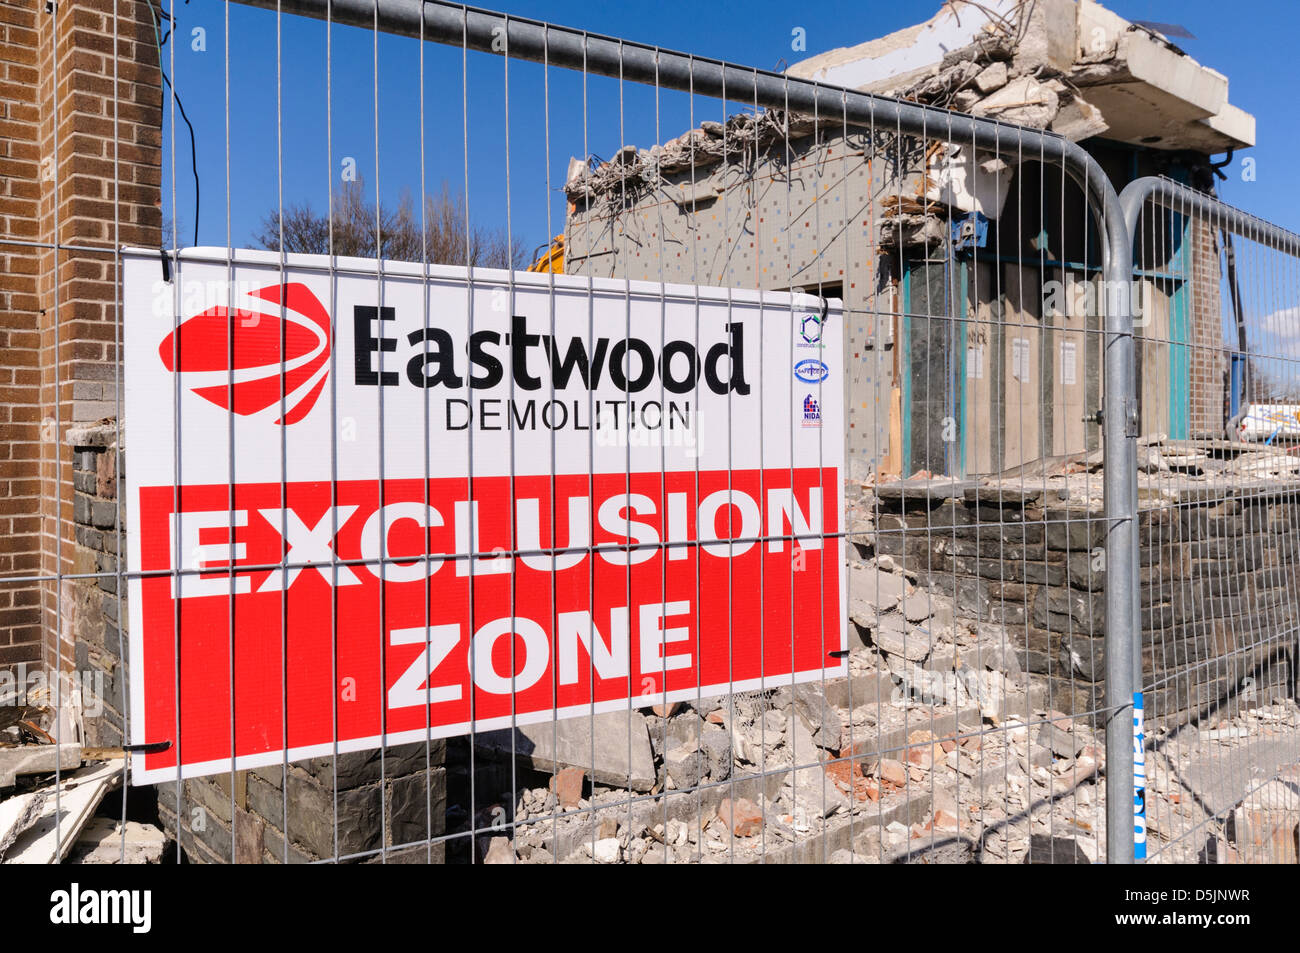 Sign at an Eastwood demolition site. - Stock Image